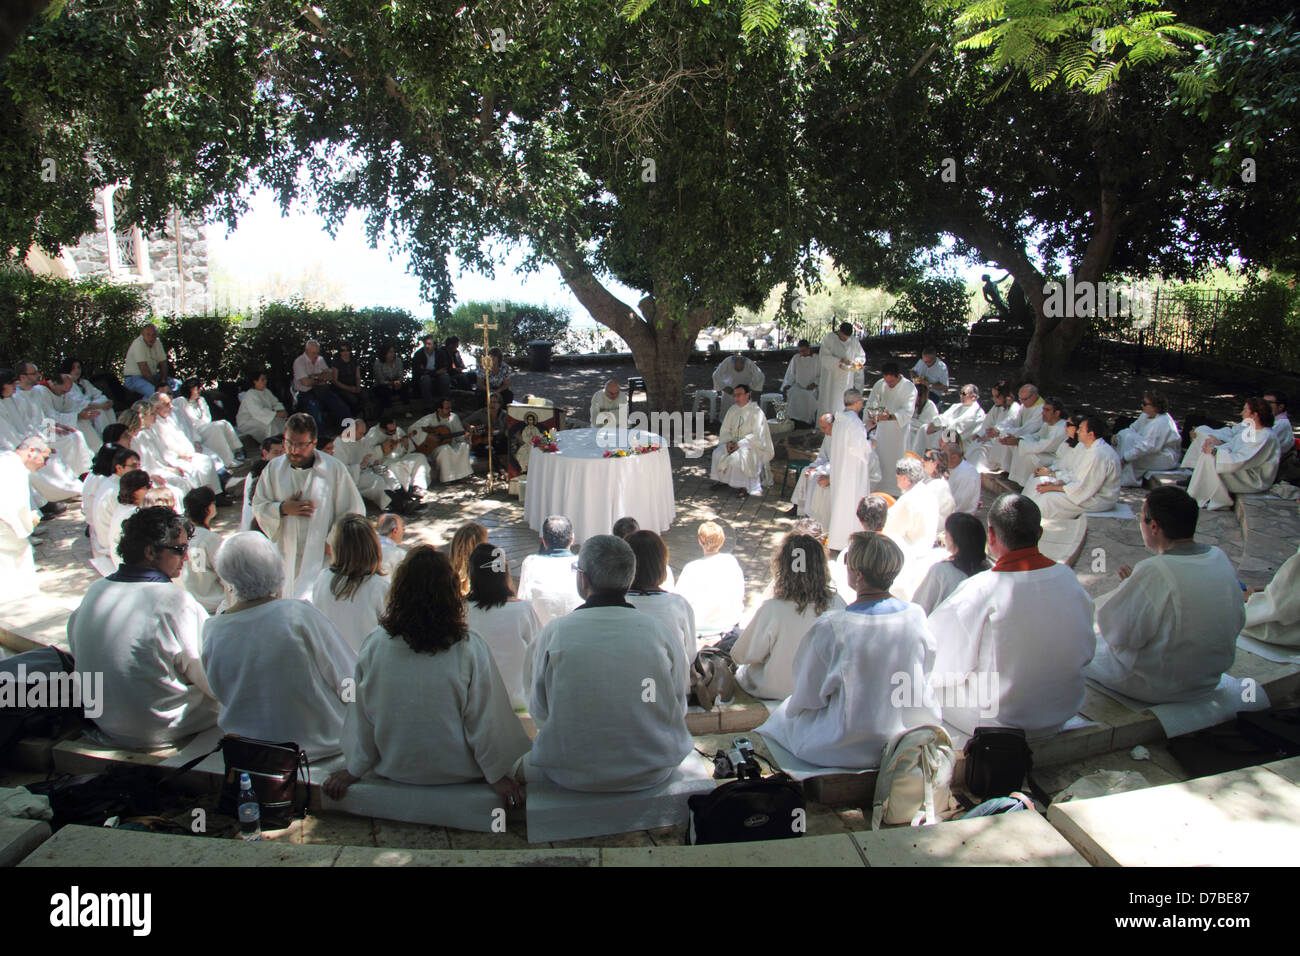 Christian Spanish pilgrims pray by The Church of the Primacy of Peter at Tabgha by the Sea of Galilee - Stock Image